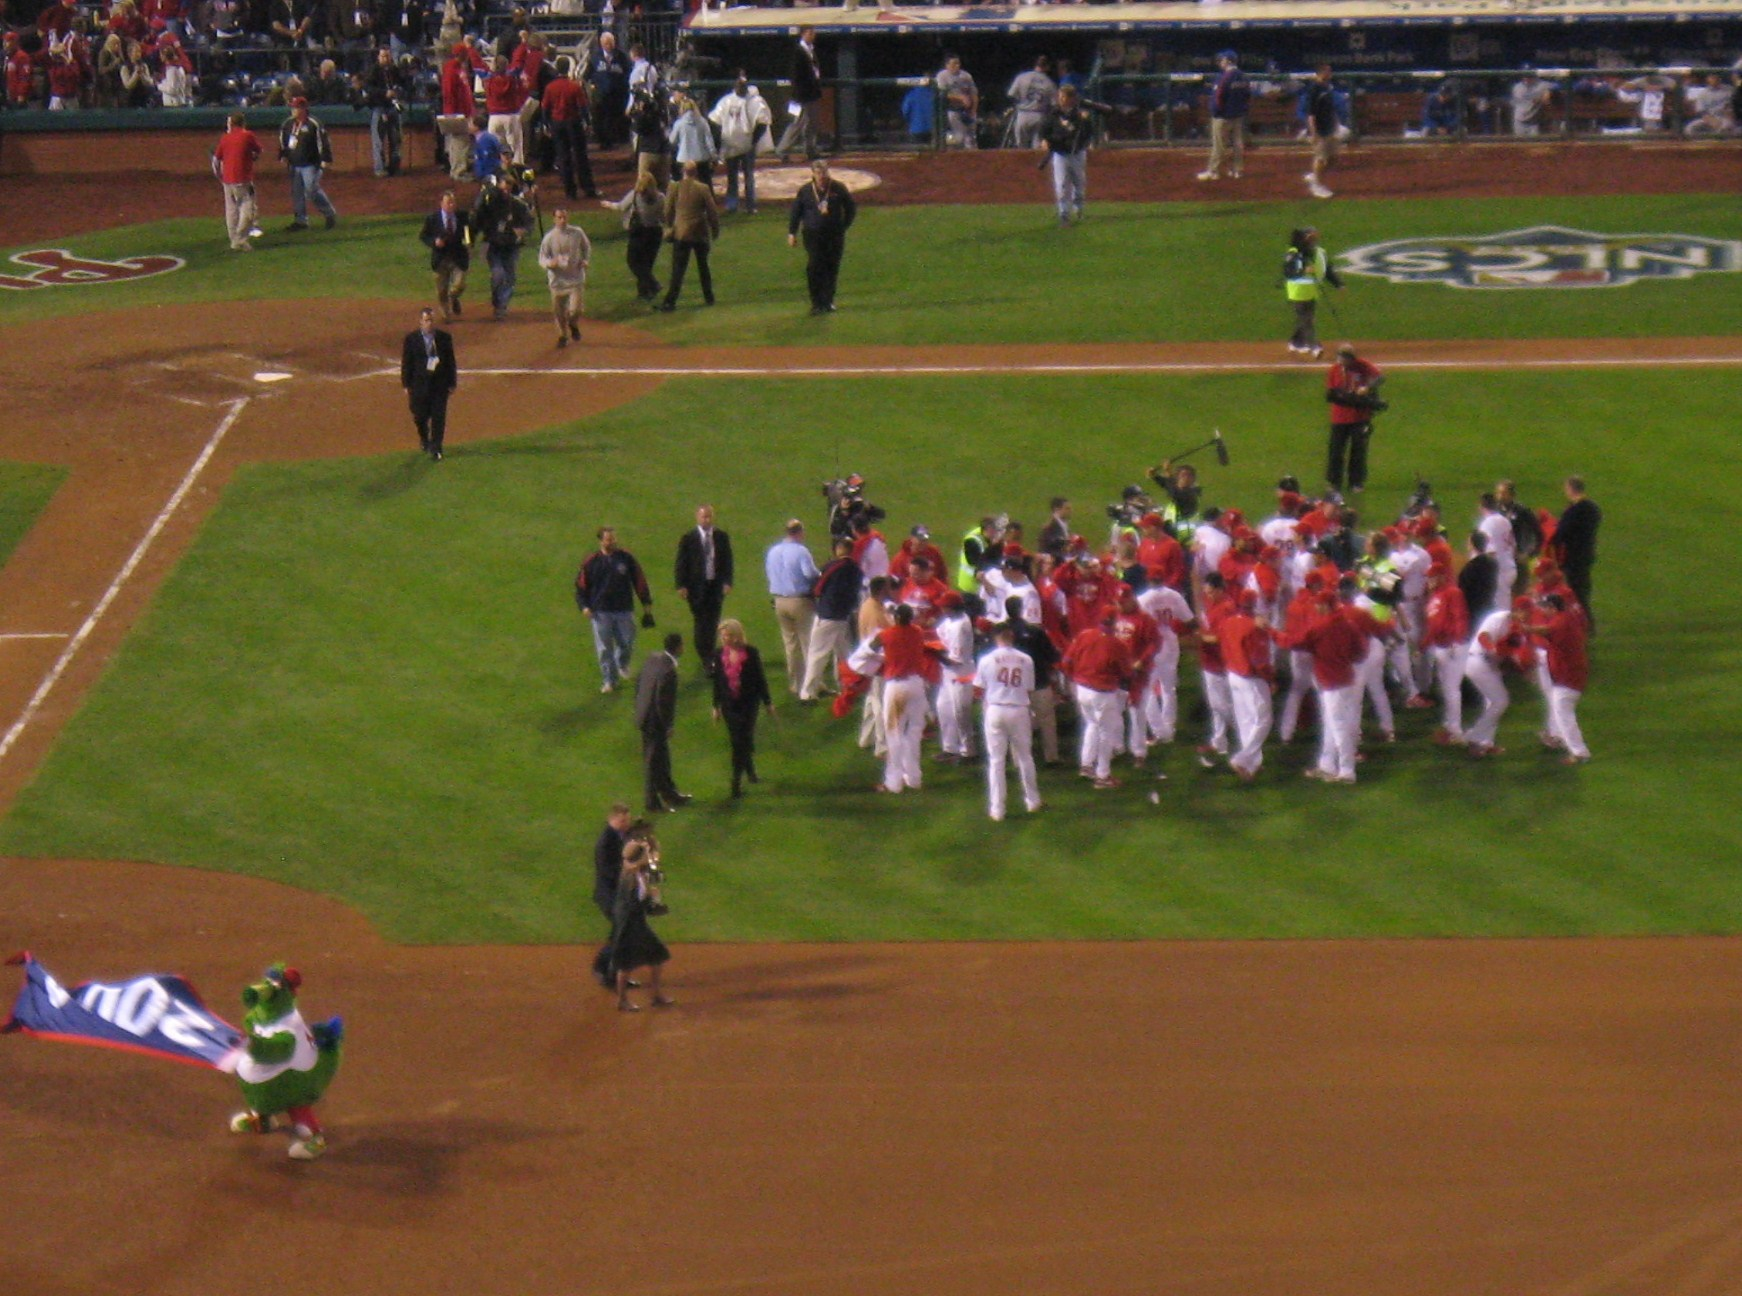 National League Championship Series